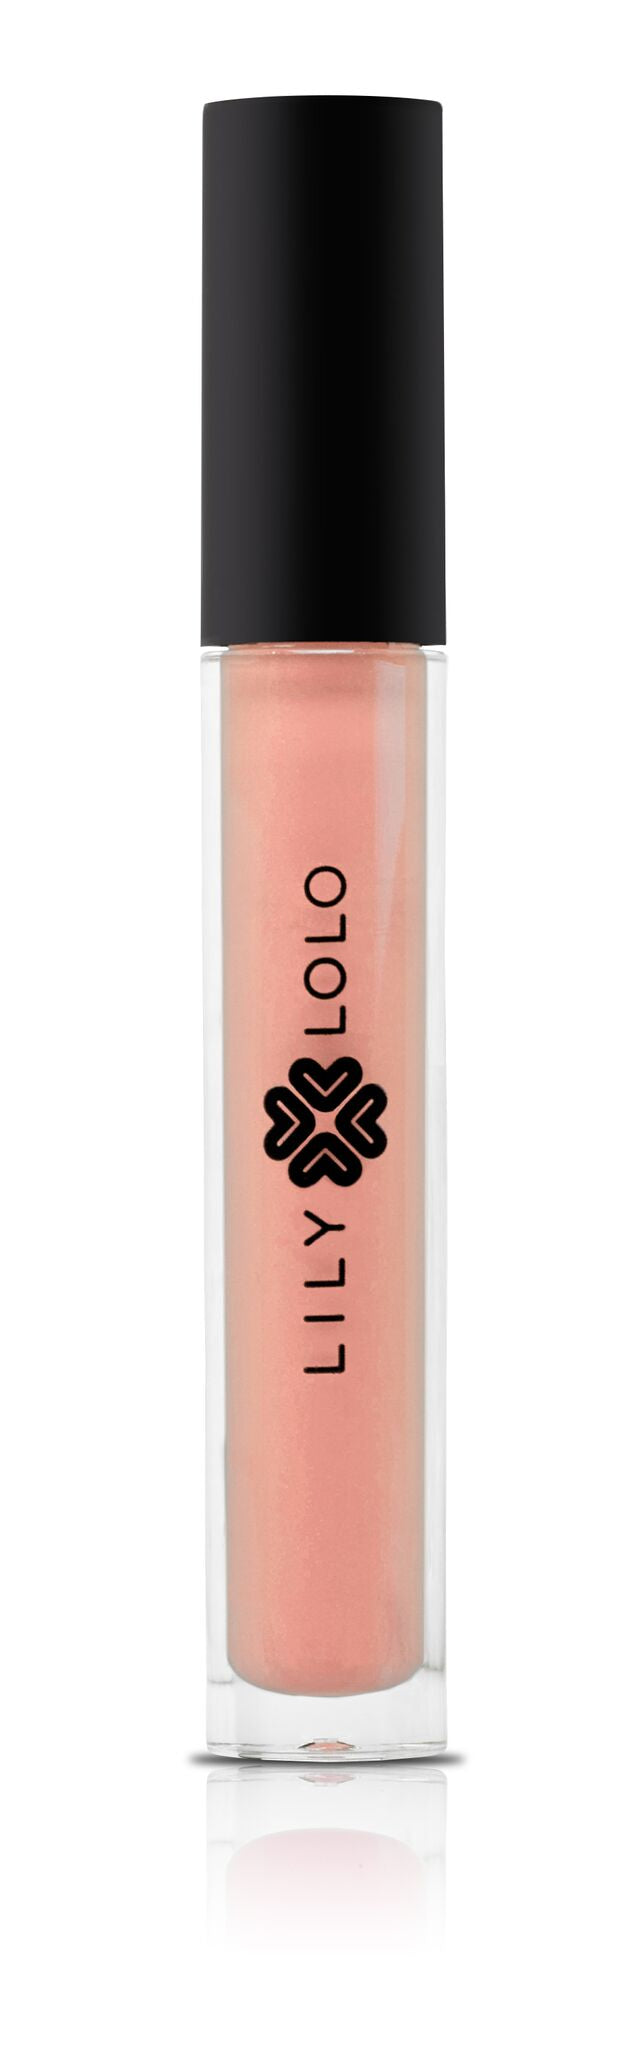 Lily Lolo Natural Lipgloss Clear 4ml